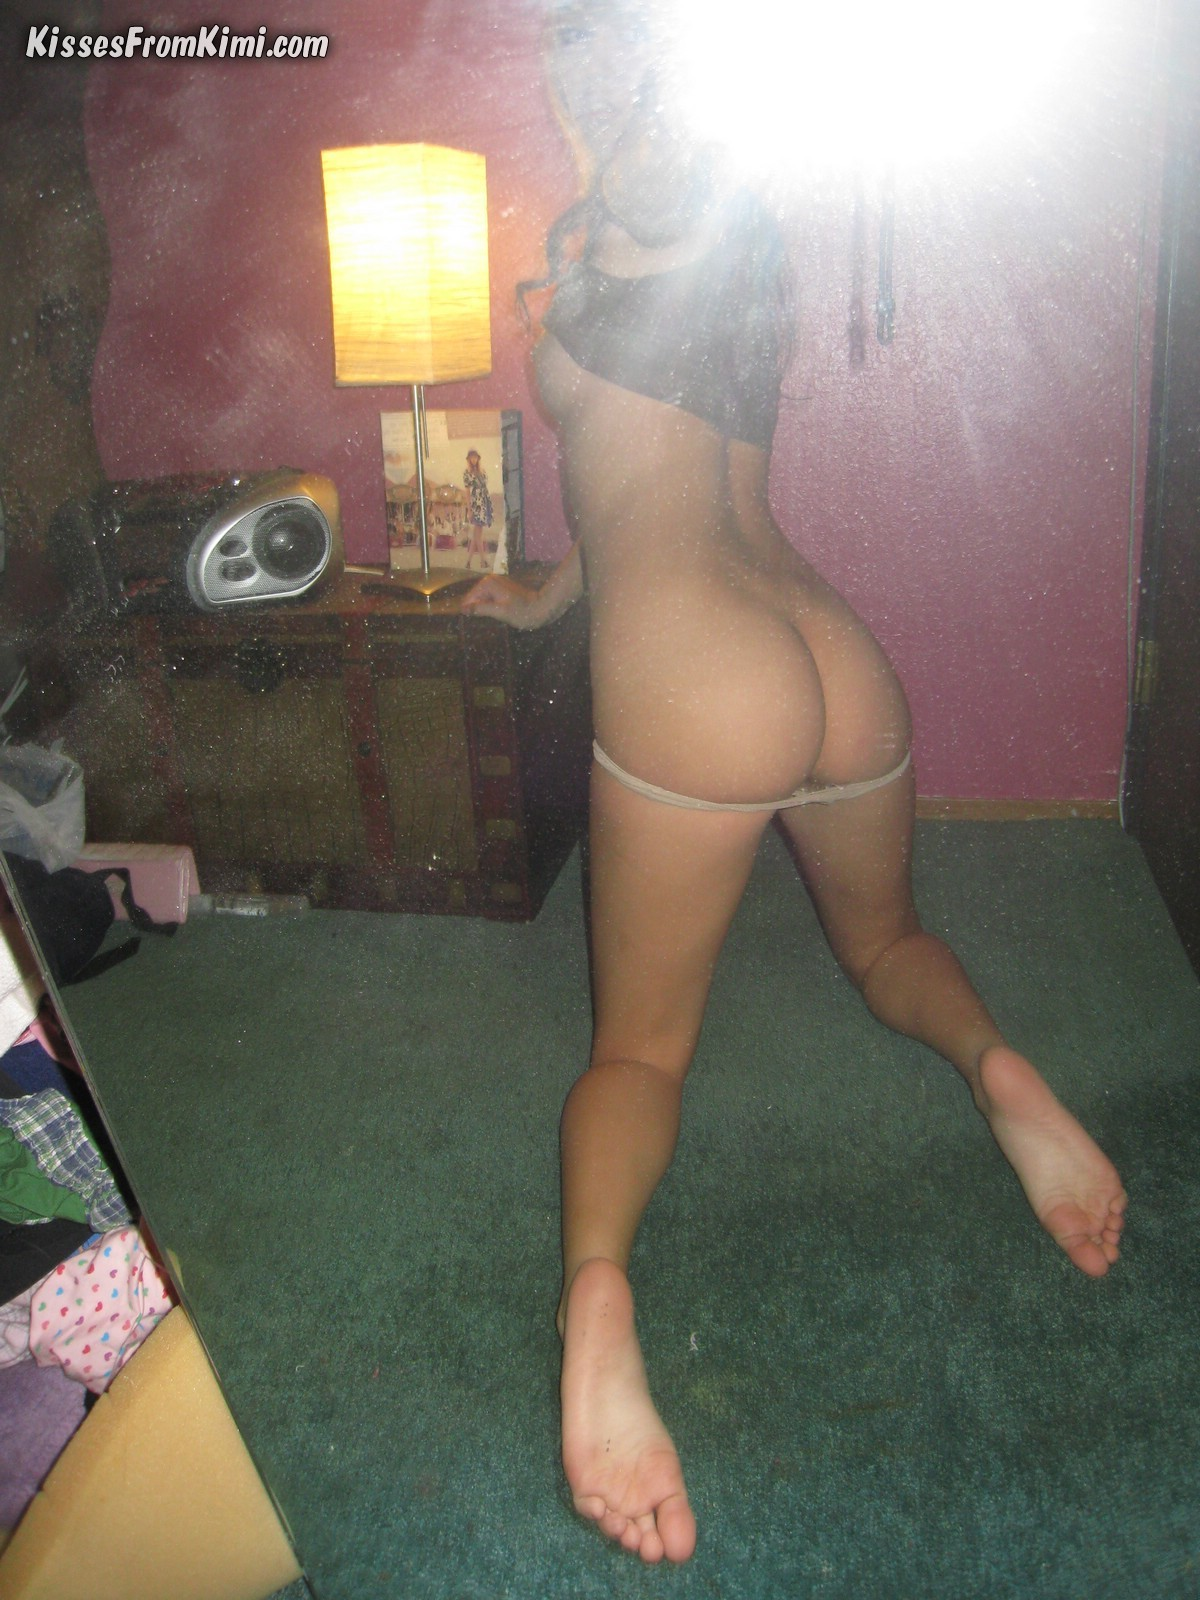 kisses-from-kimi-young-blonde-self-shot-nude-15